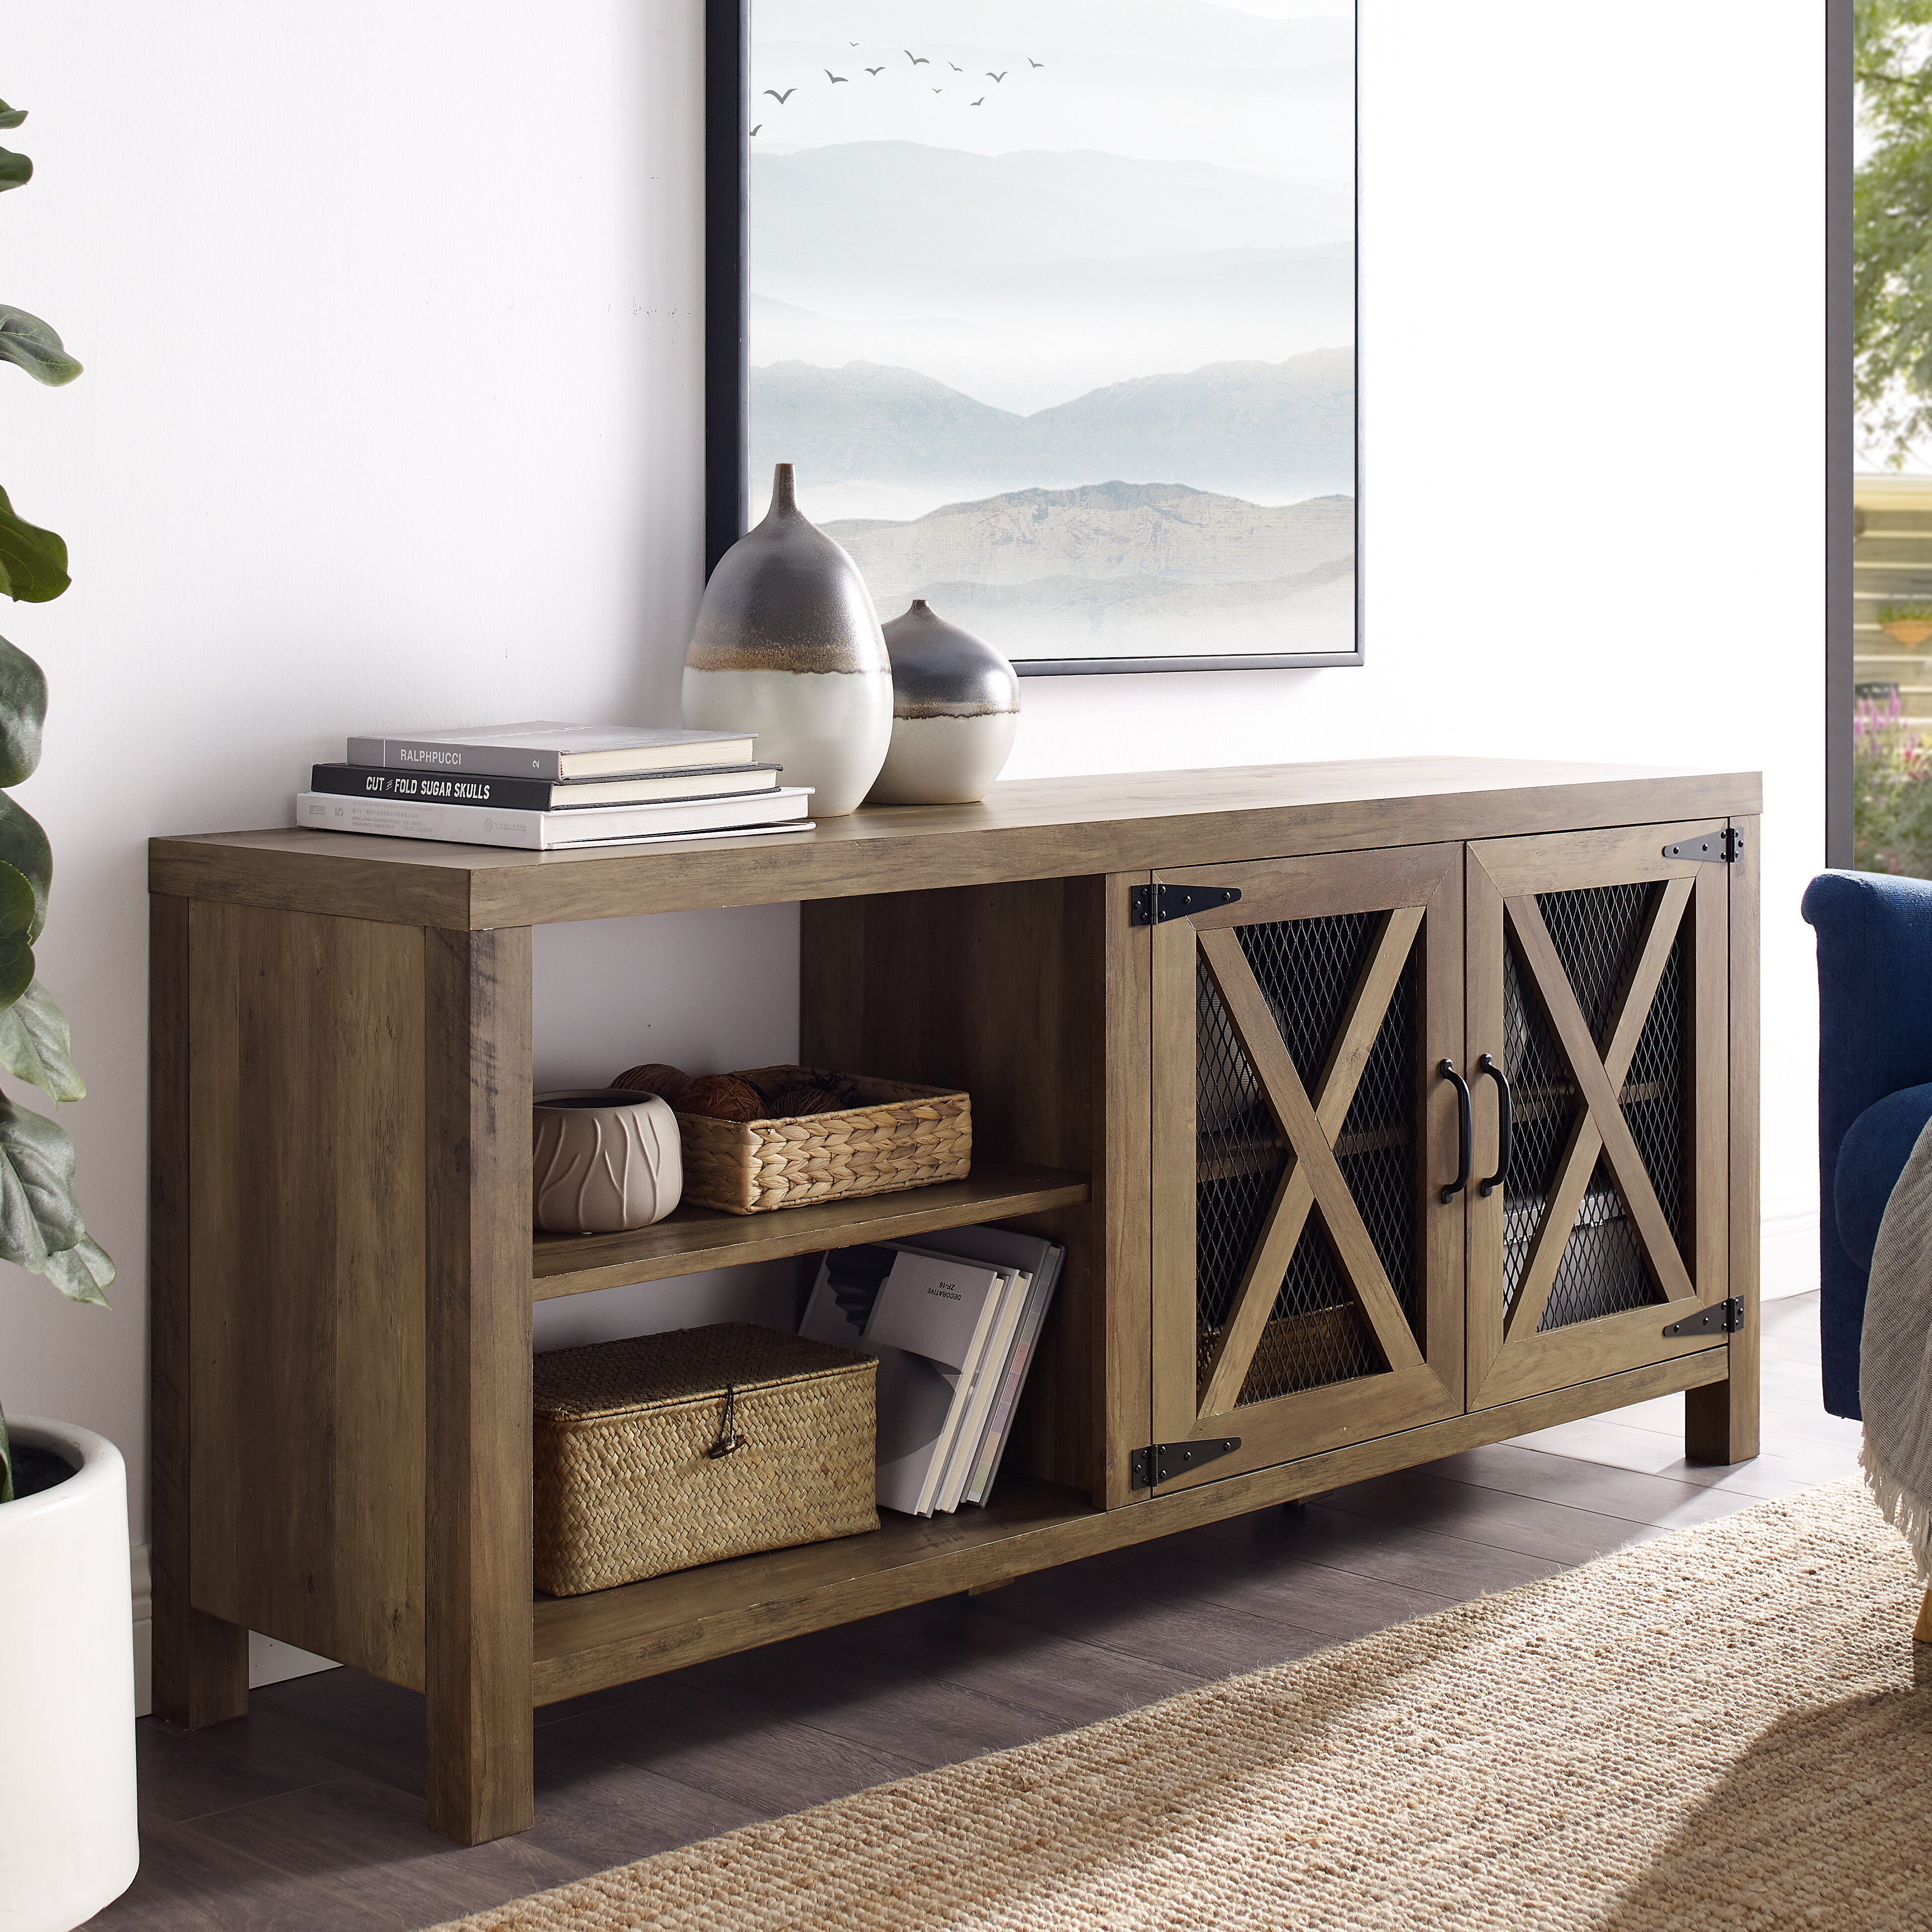 Gracie Oaks Tansey Tv Stand For Tvs Up To 65 Reviews Wayfair